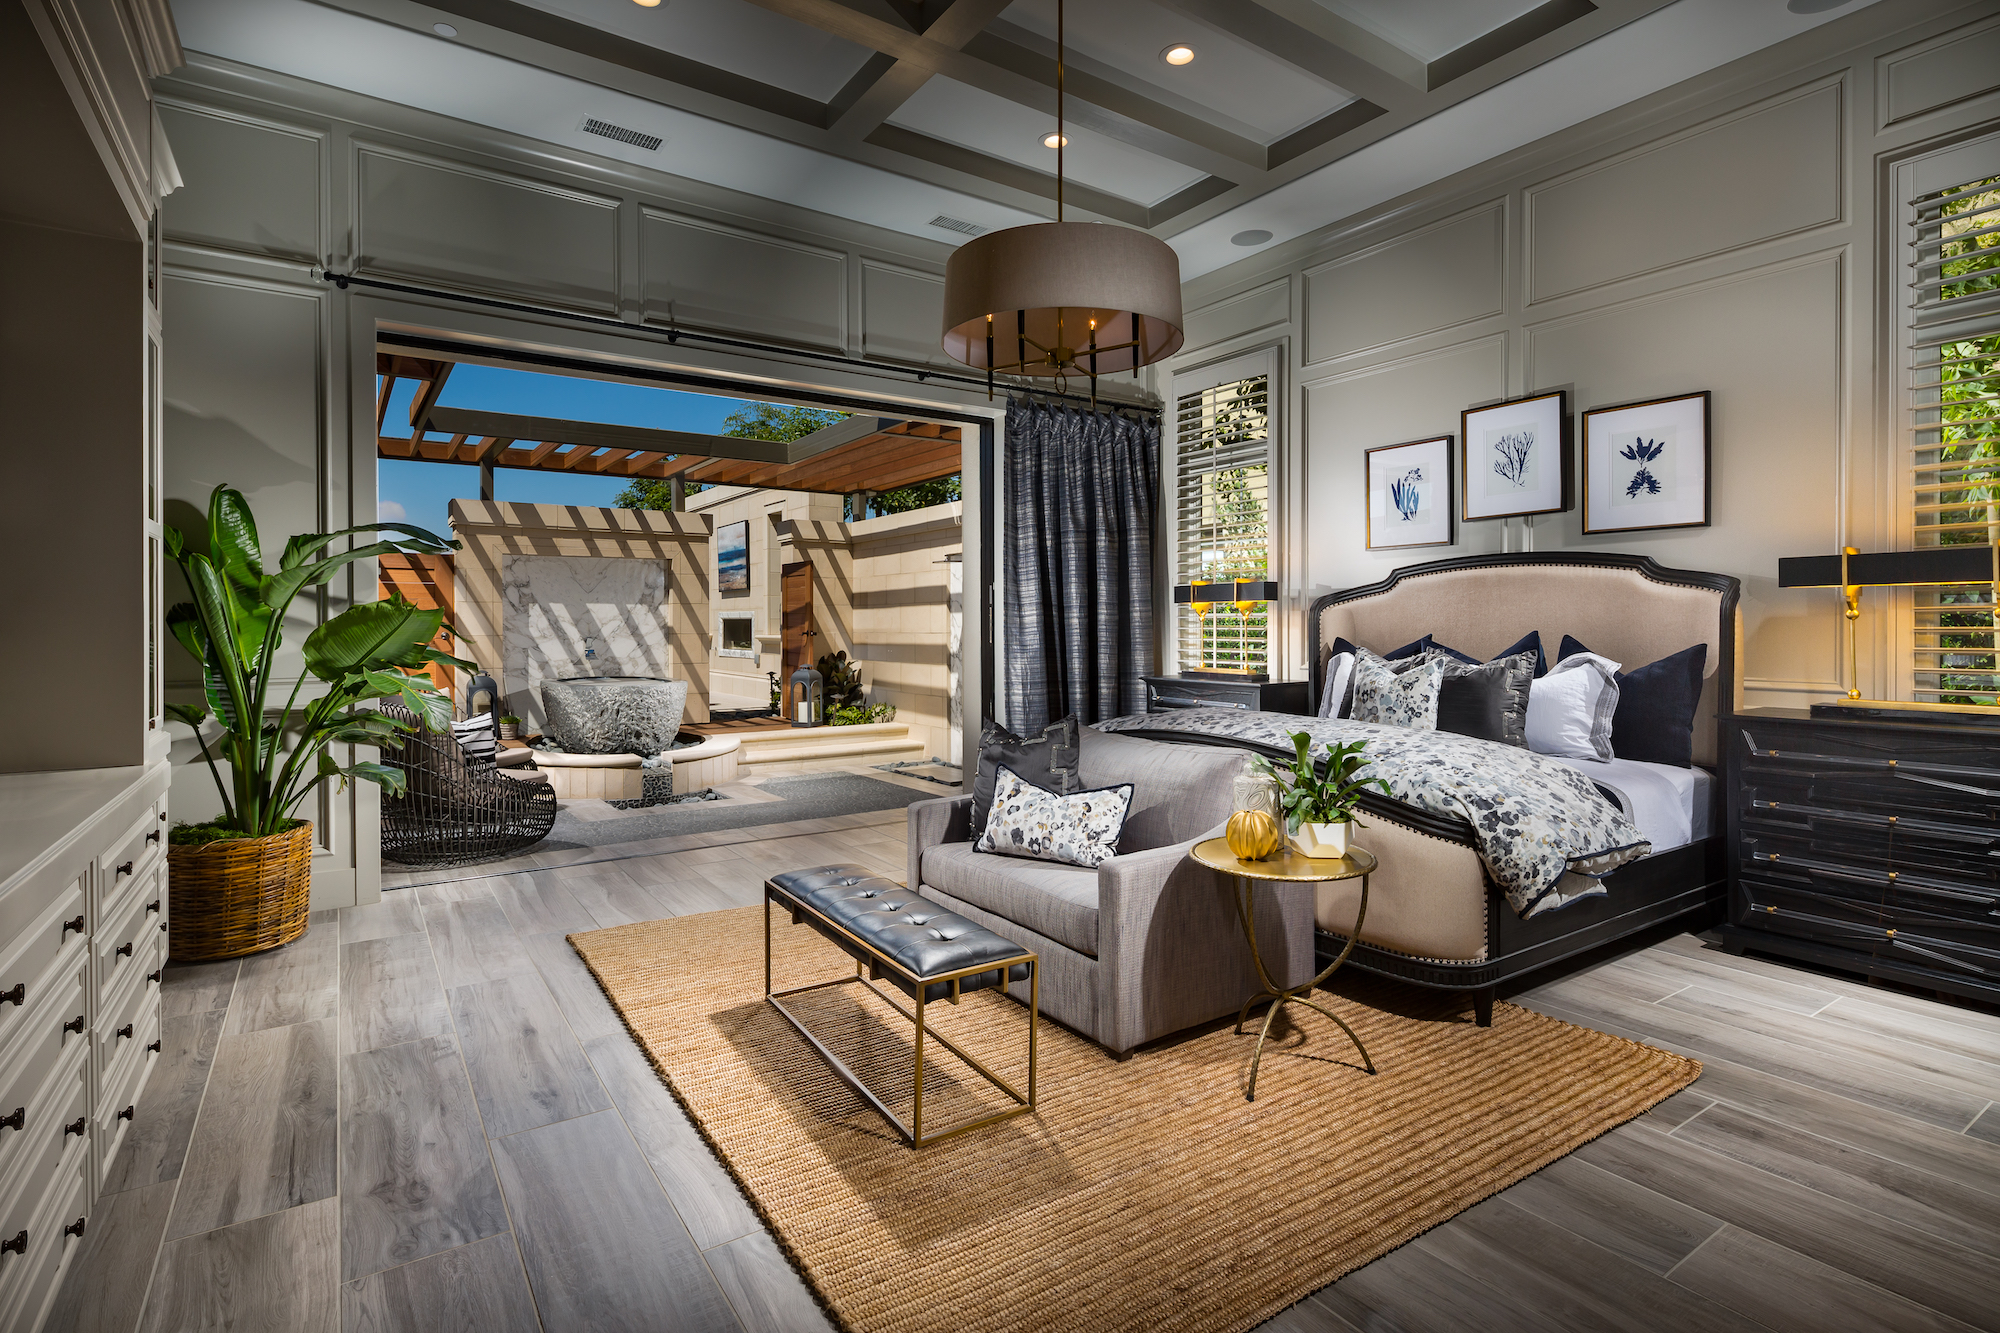 Bedroom in a California home with indoor and outdoor space.